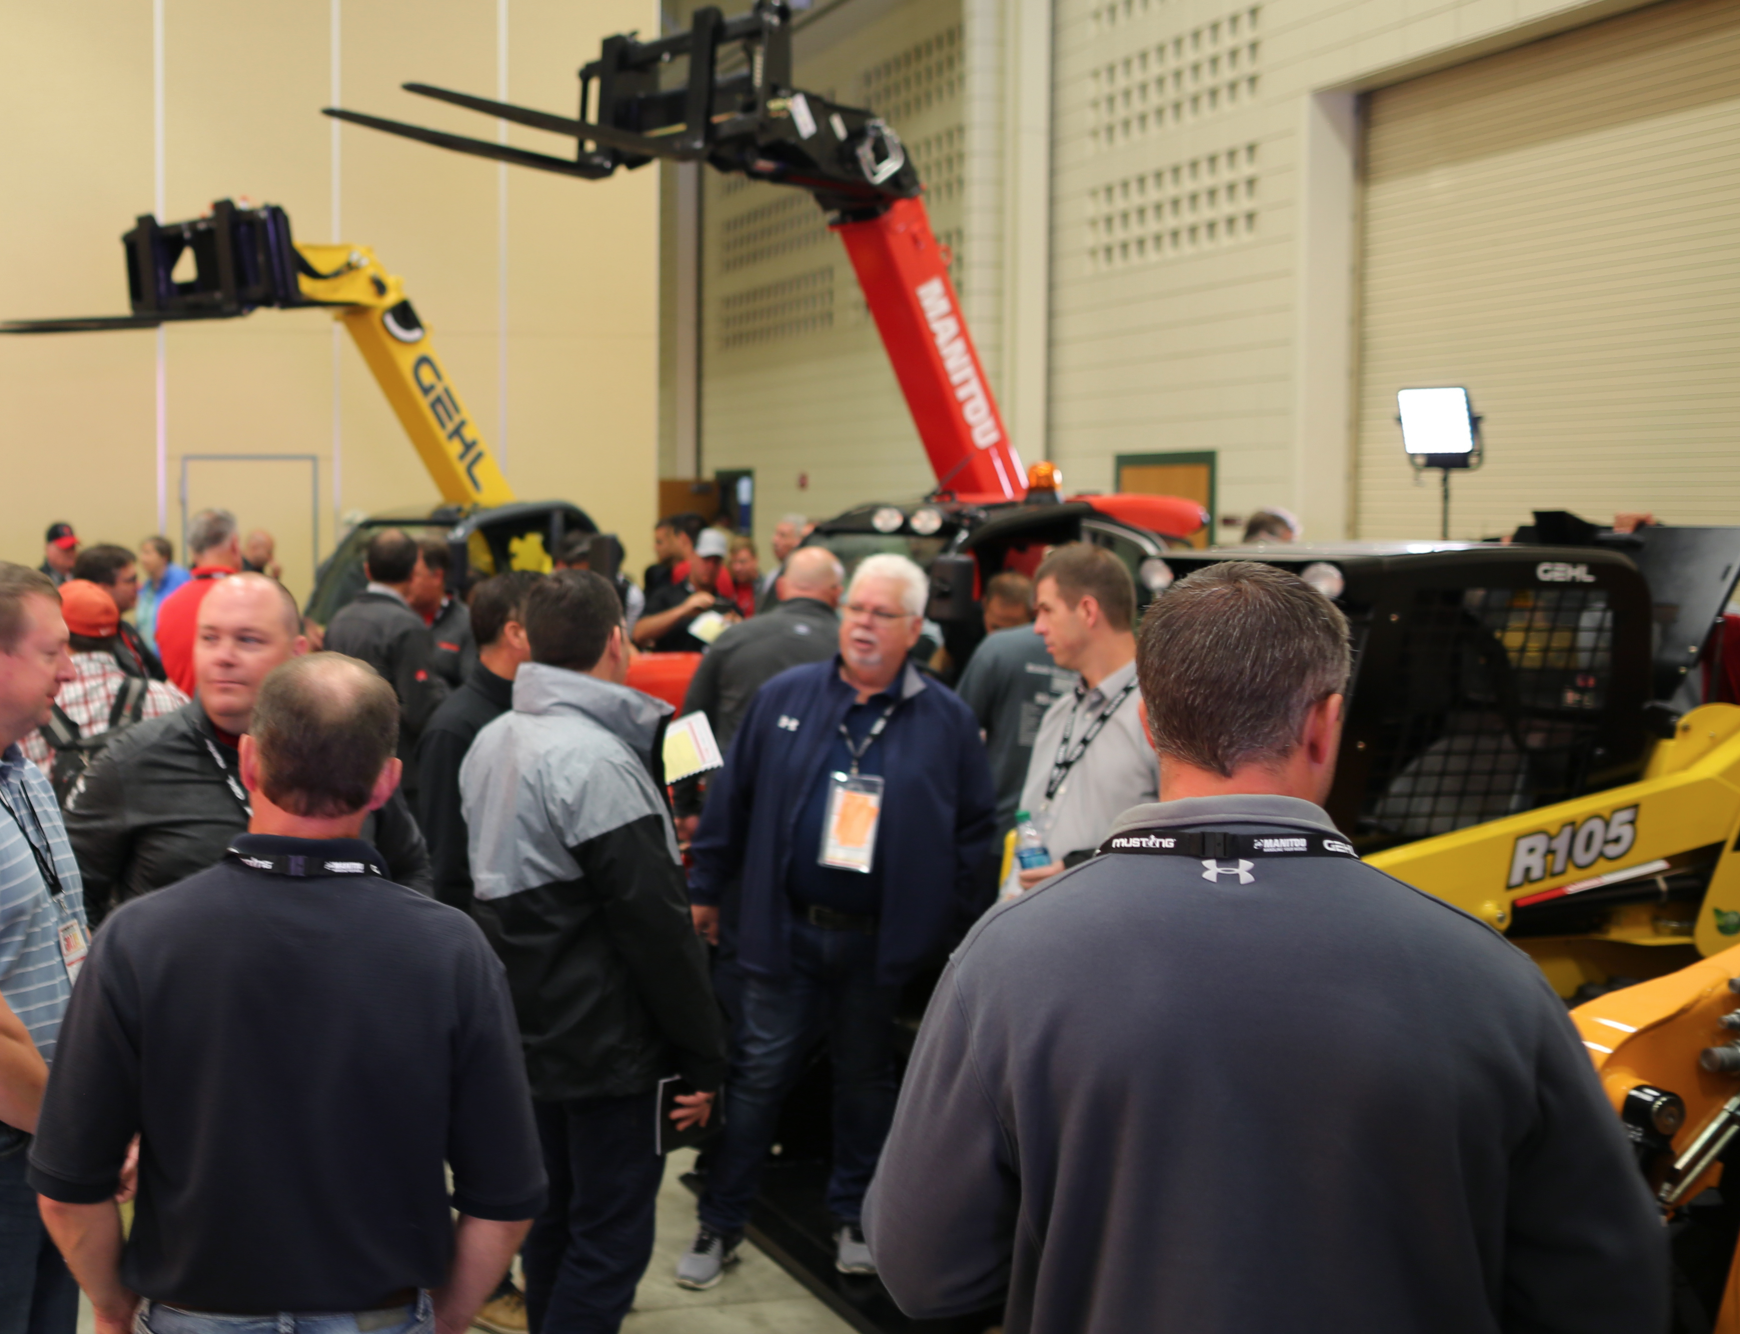 Manitou Dealers Size Up Brand New Lineup At Annual Meeting